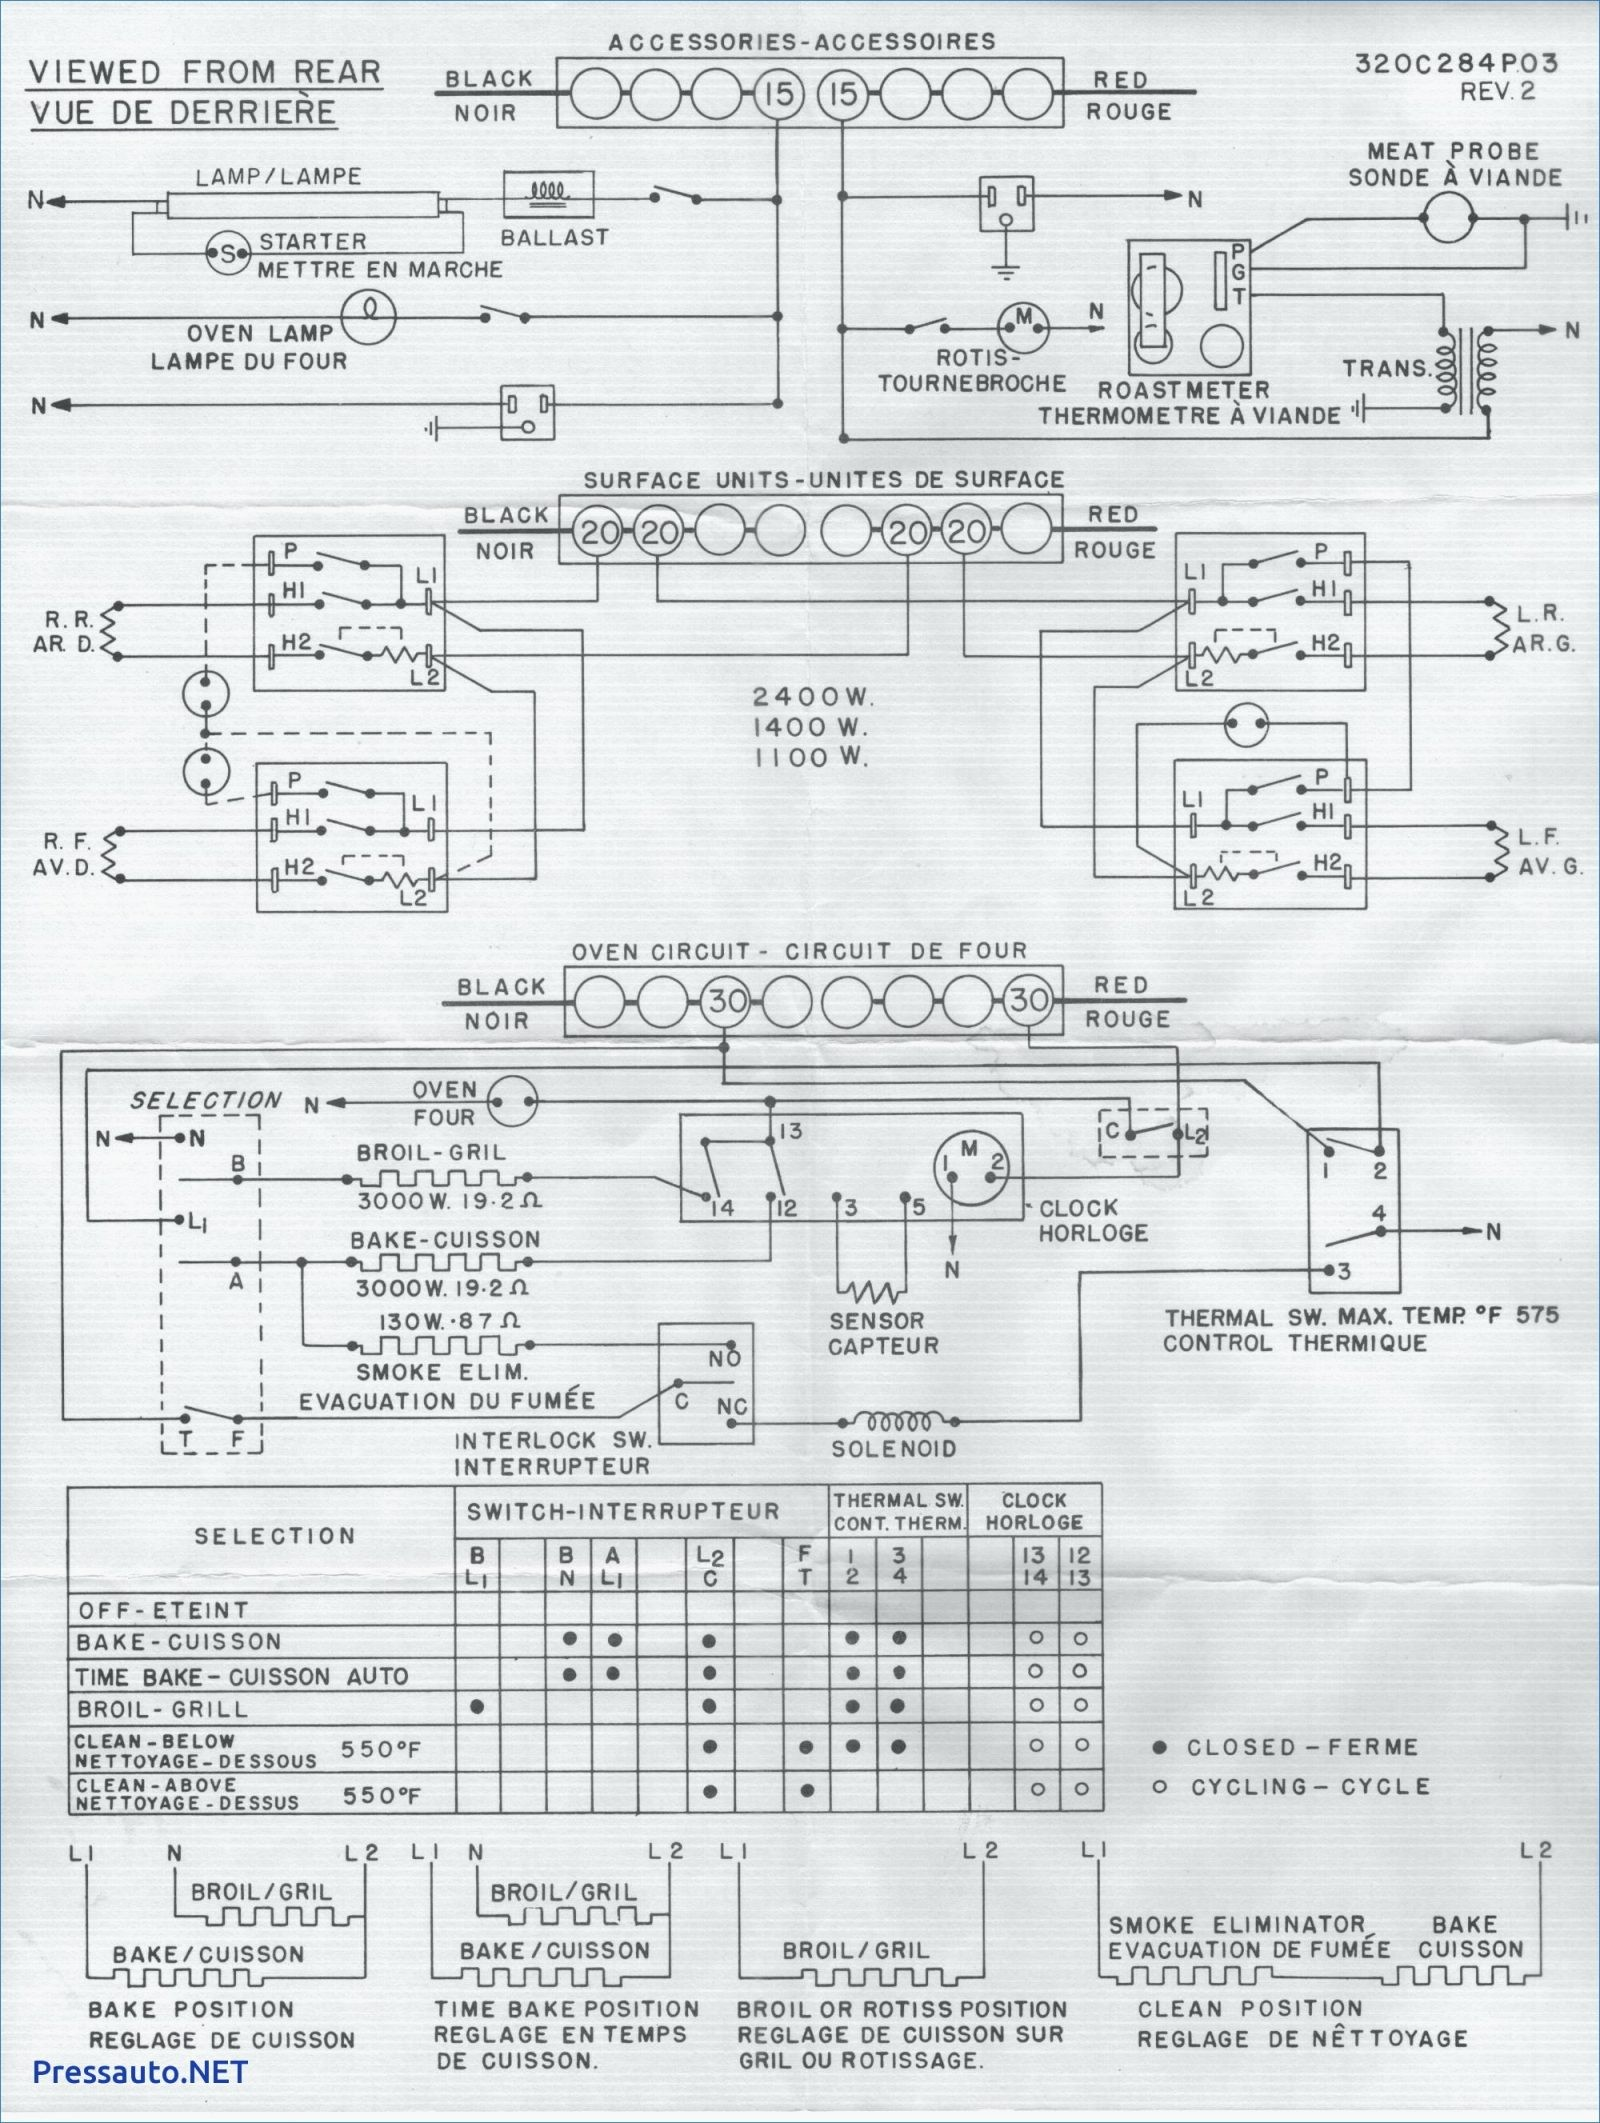 Iaq thermostat wiring diagram wiring library honeywell iaq wiring diagram 2 wiring diagram honeywell digital thermostat wiring diagram iaq thermostat wiring diagram asfbconference2016 Choice Image